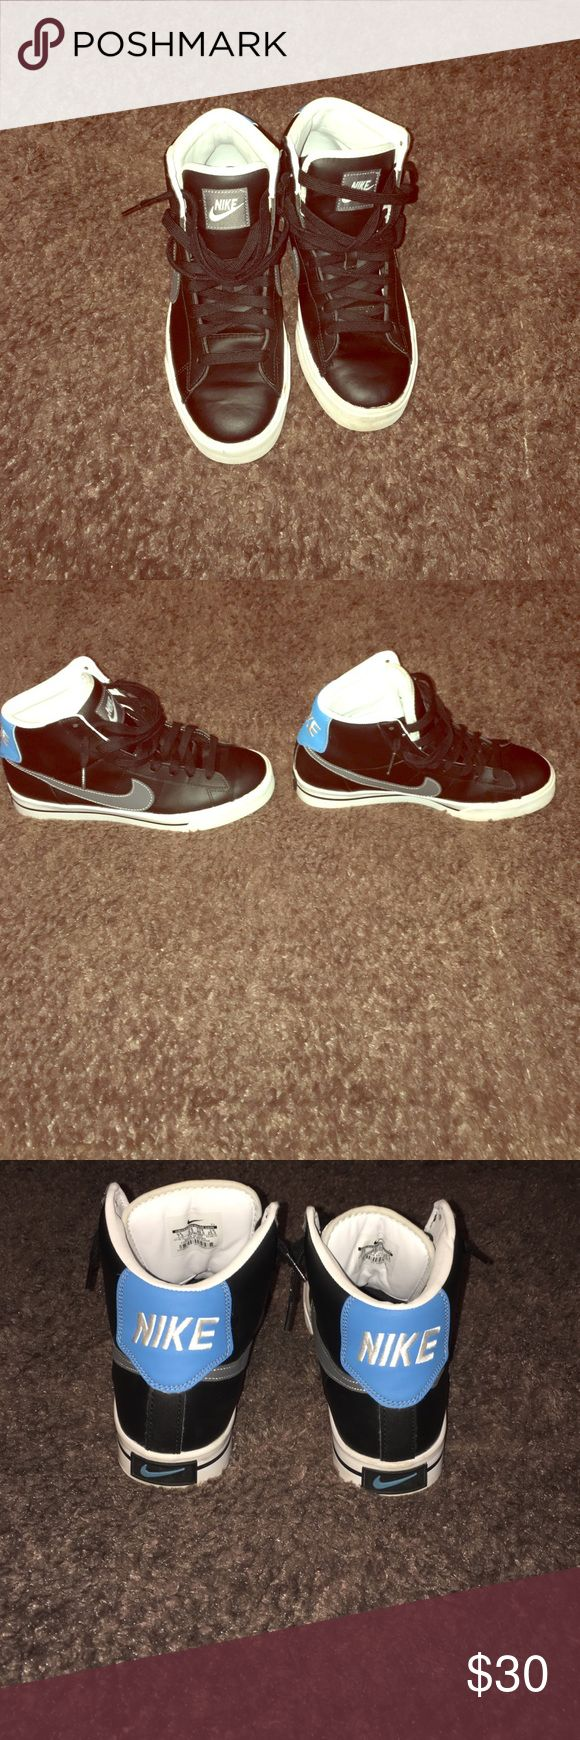 Men Nike Mid top sneakers Nike Blazers excellent condition..priced to sell Nike Shoes Sneakers